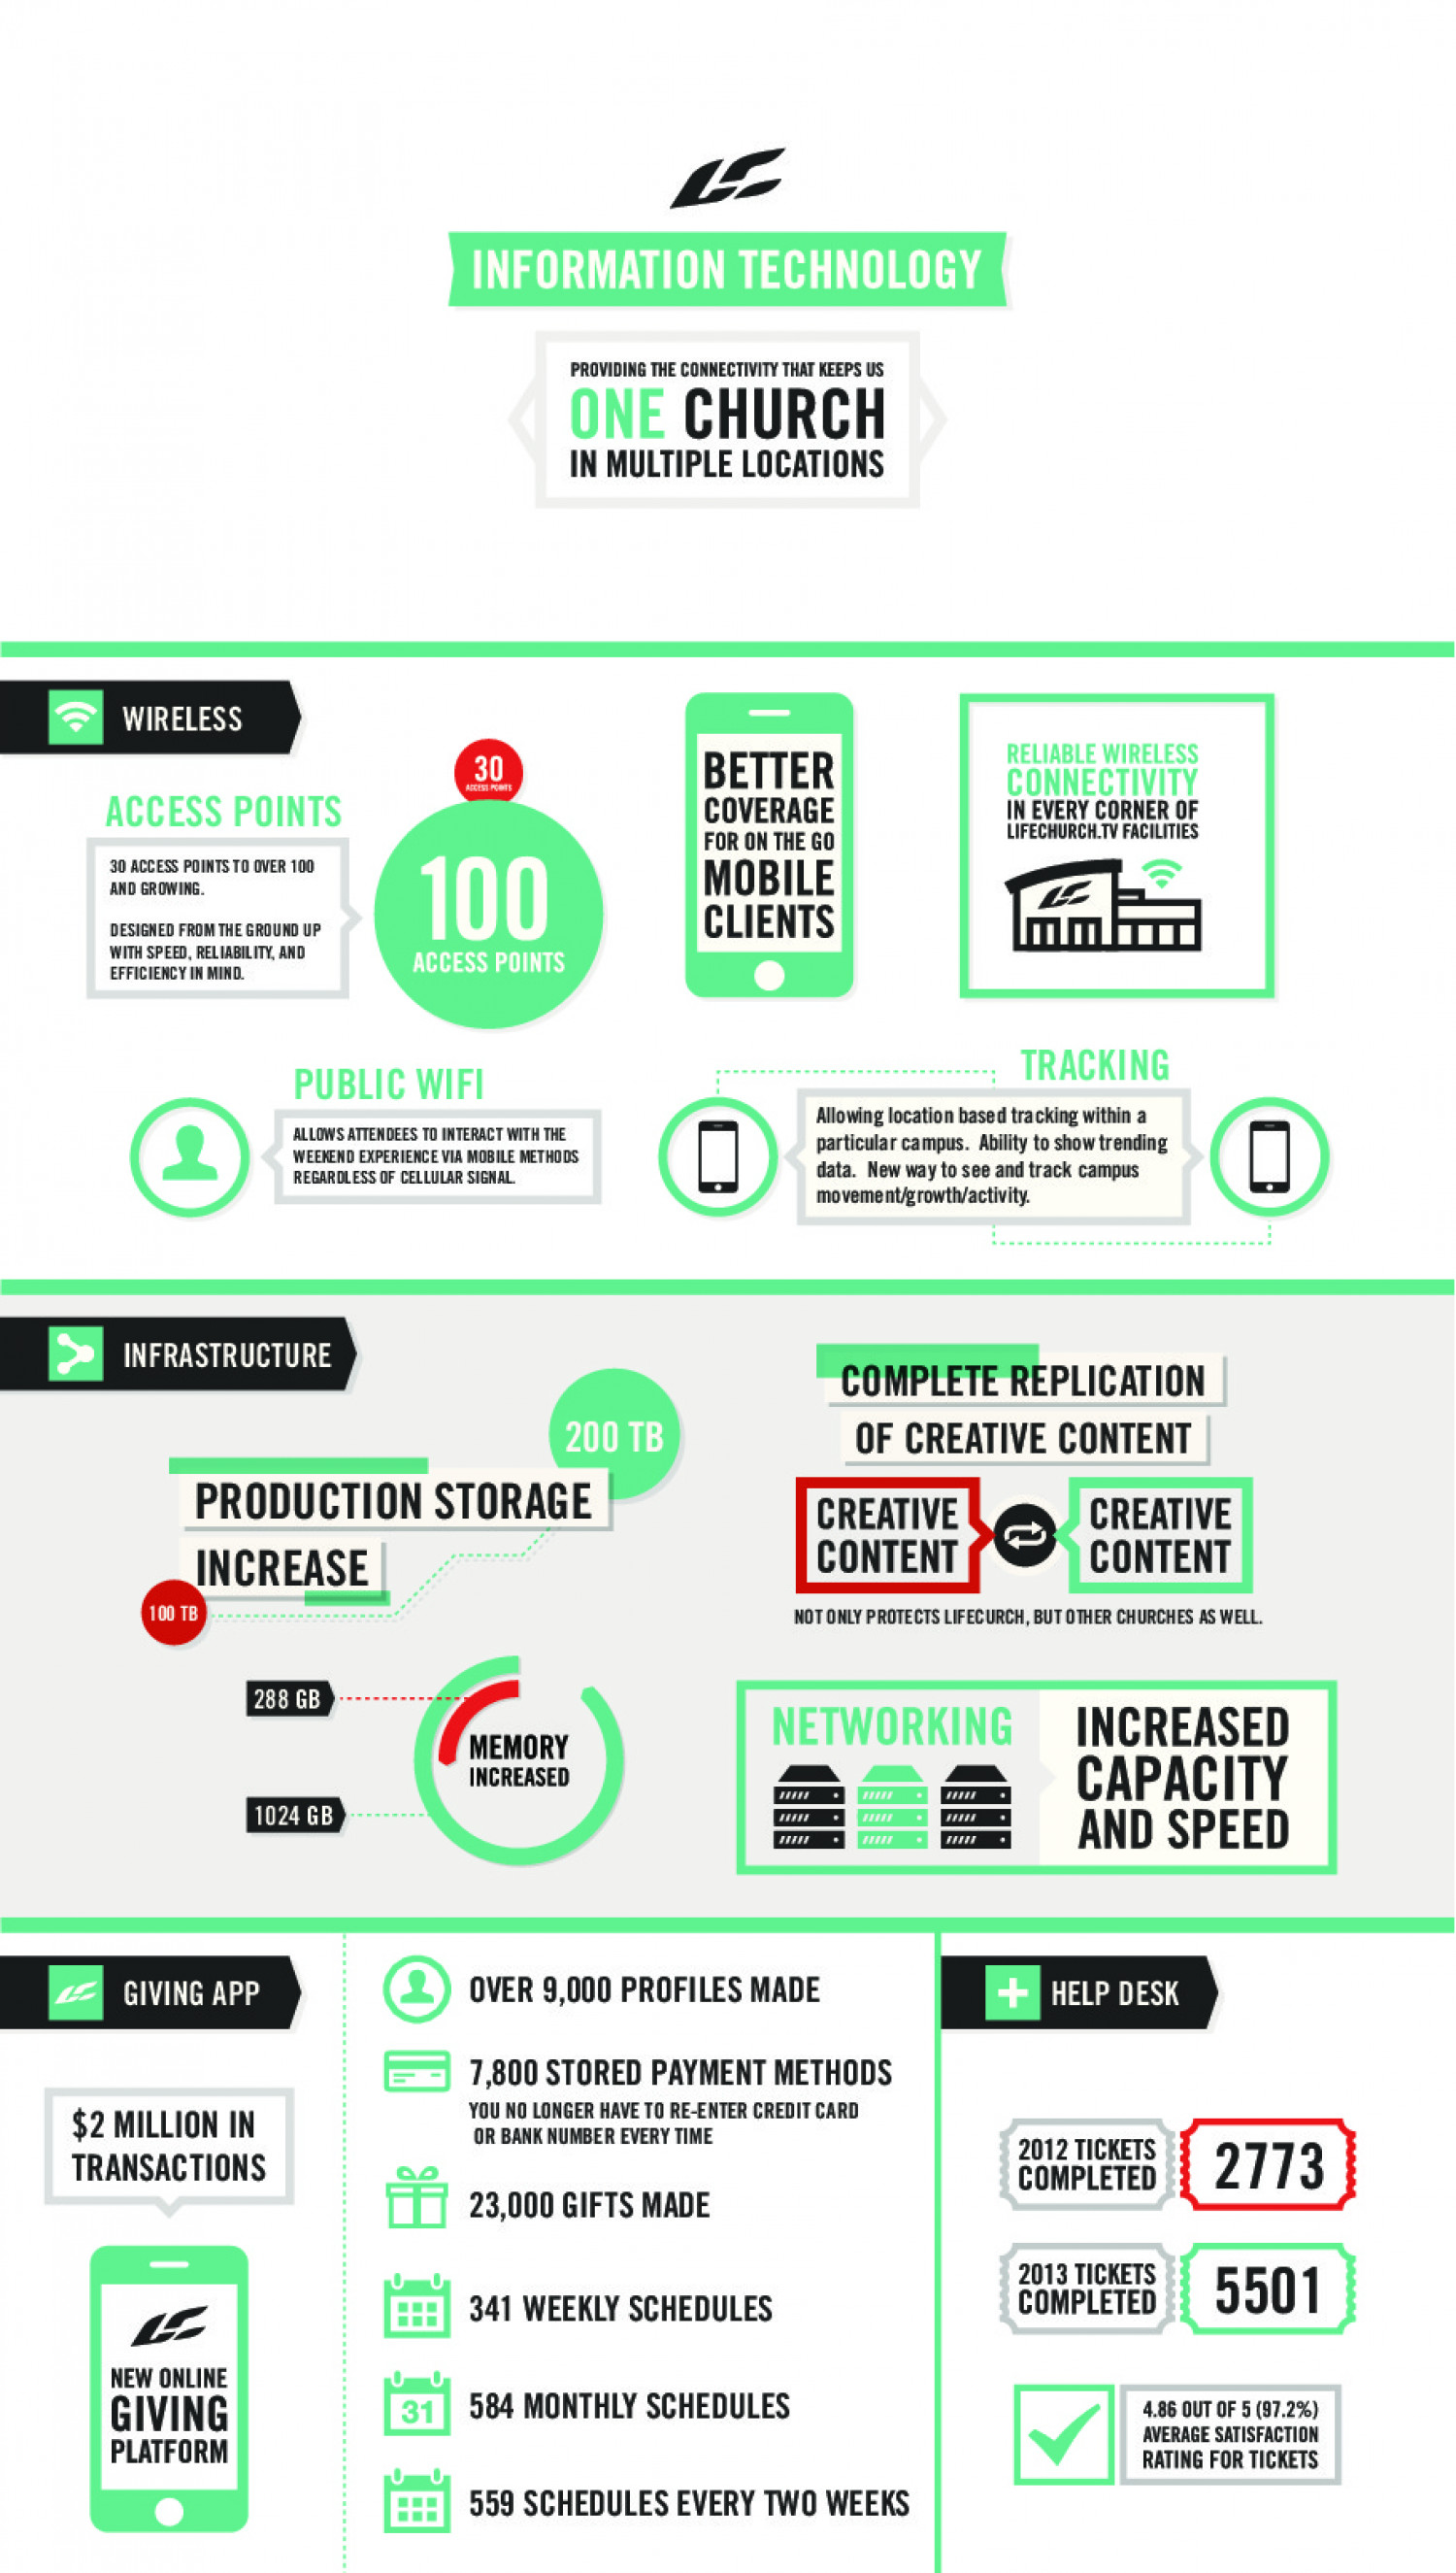 LifeChurch.tv Technology Infographic Infographic